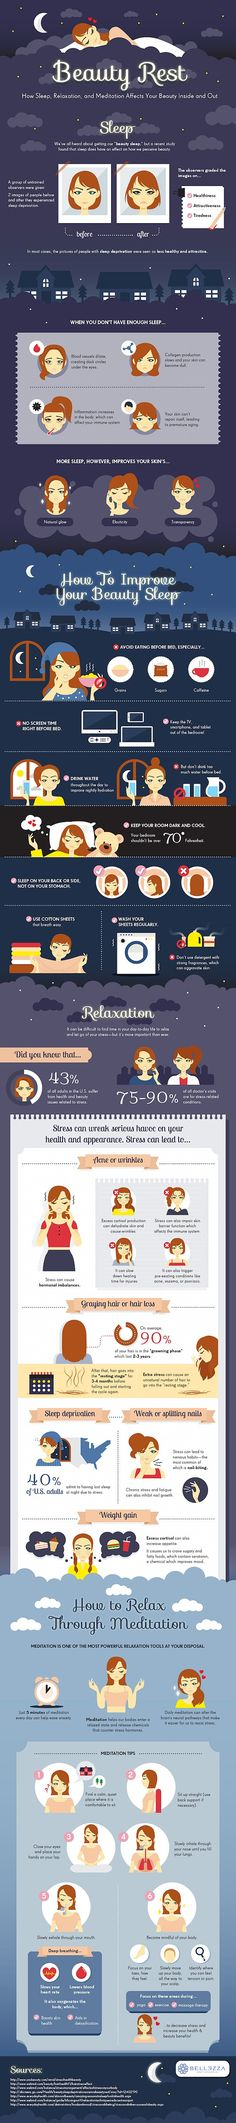 Tips to Improve Your Beauty Sleep, check it out at http://makeuptutorials.com/beauty-sleep-tips-makeup-tutorials